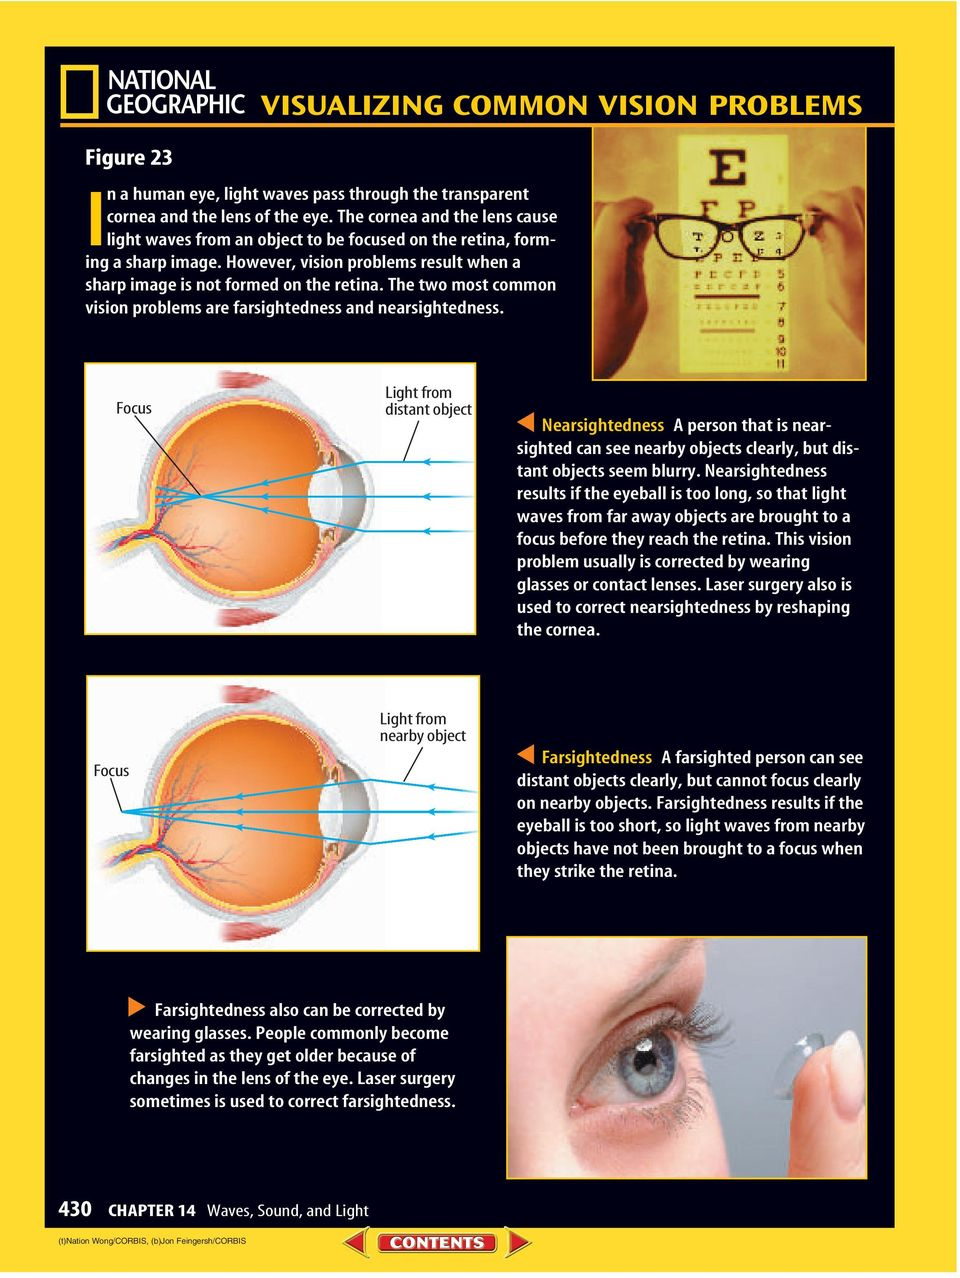 The two most common vision problems are farsightedness and nearsightedness.